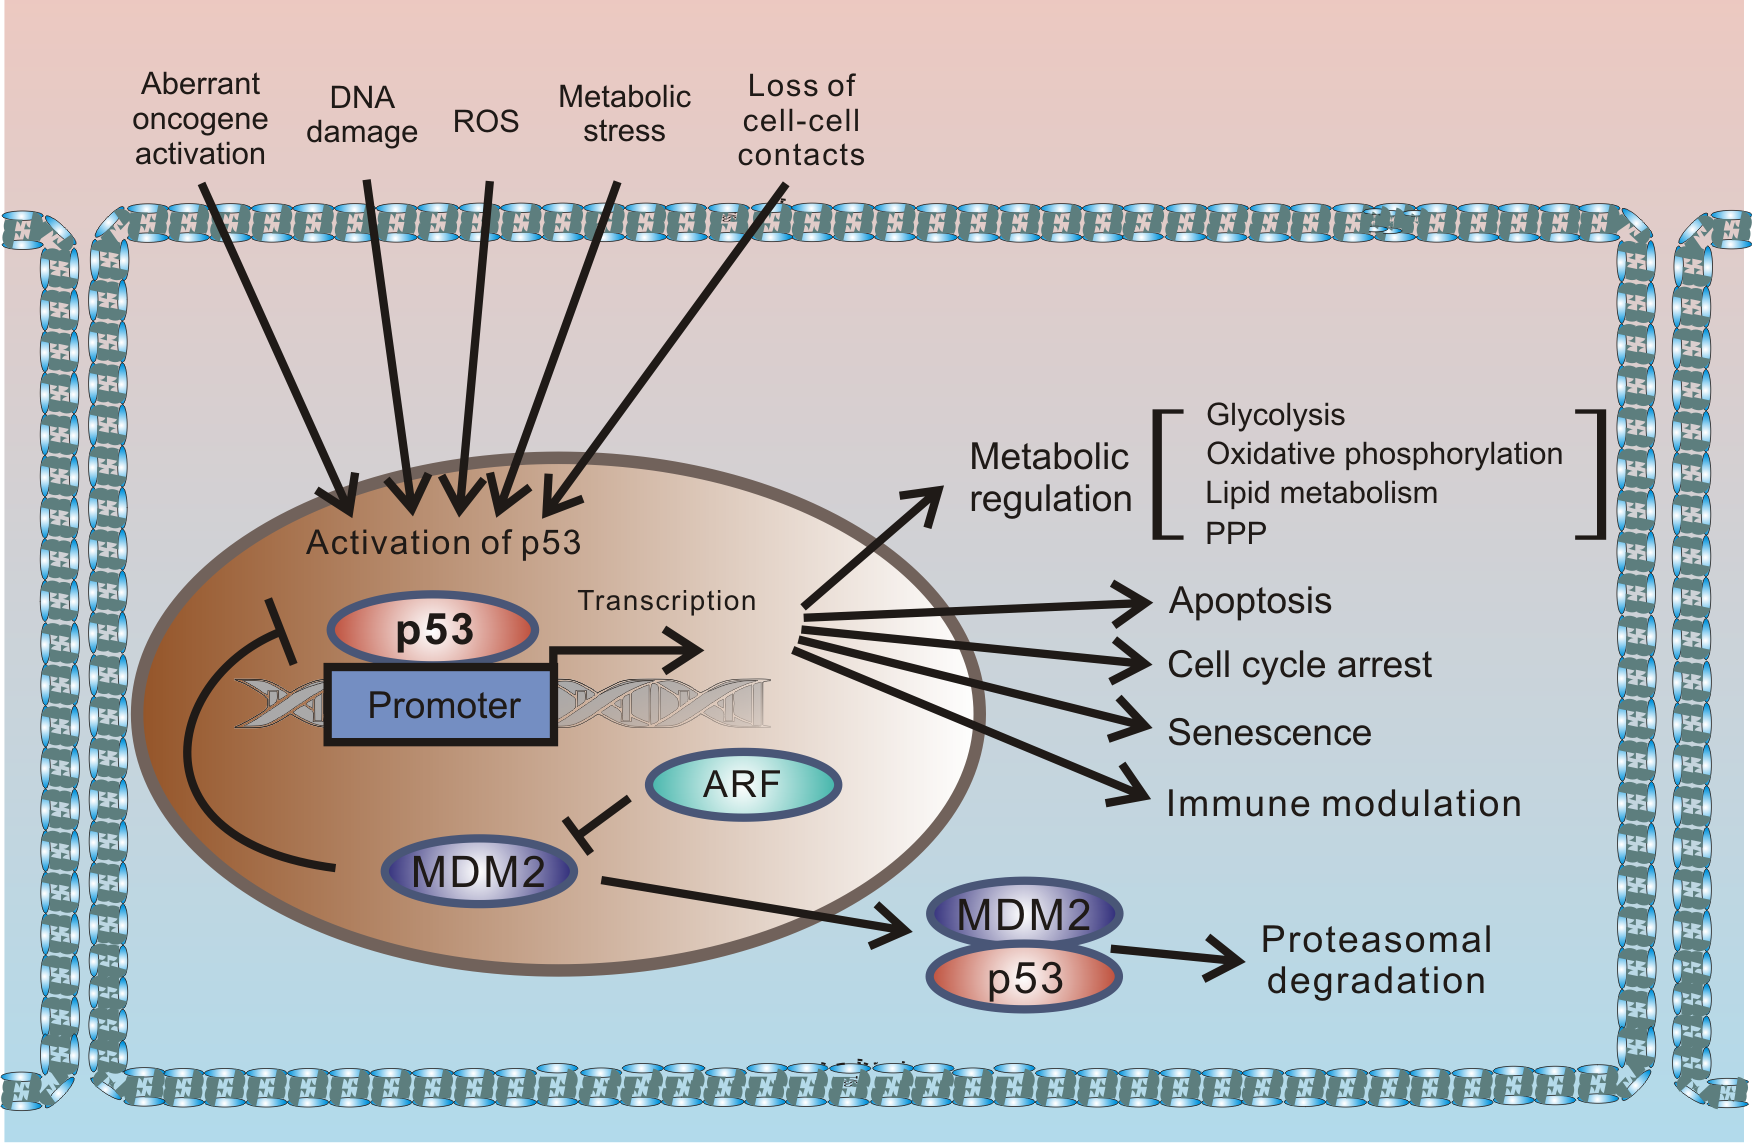 Outline of the regulation of cellular stresses by p53.